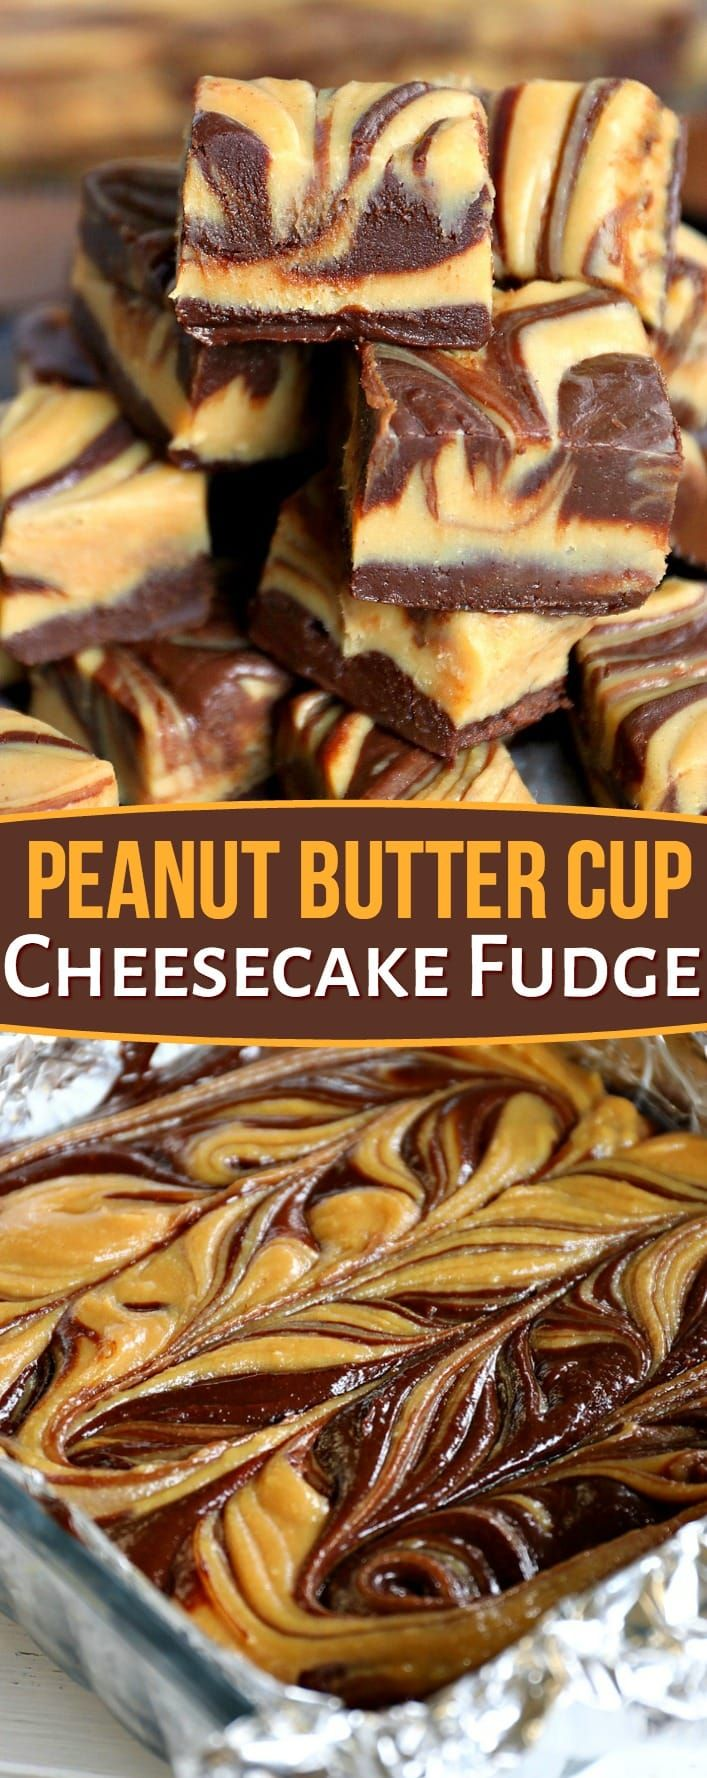 Peanut Butter Cup Cheesecake Fudge